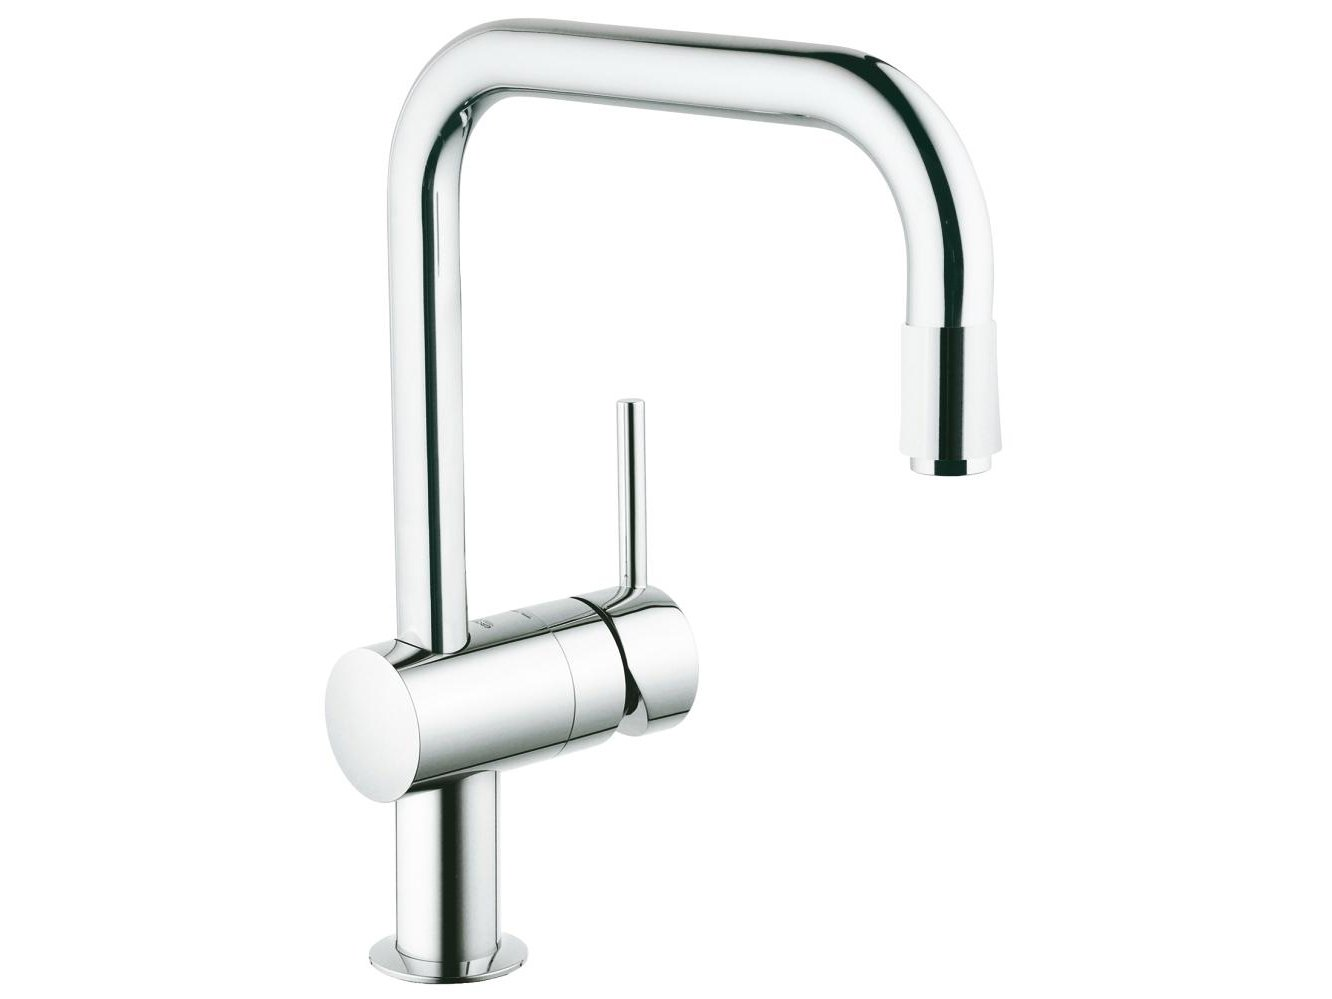 MINTA U Kitchen mixer tap with aerator Minta Collection By G